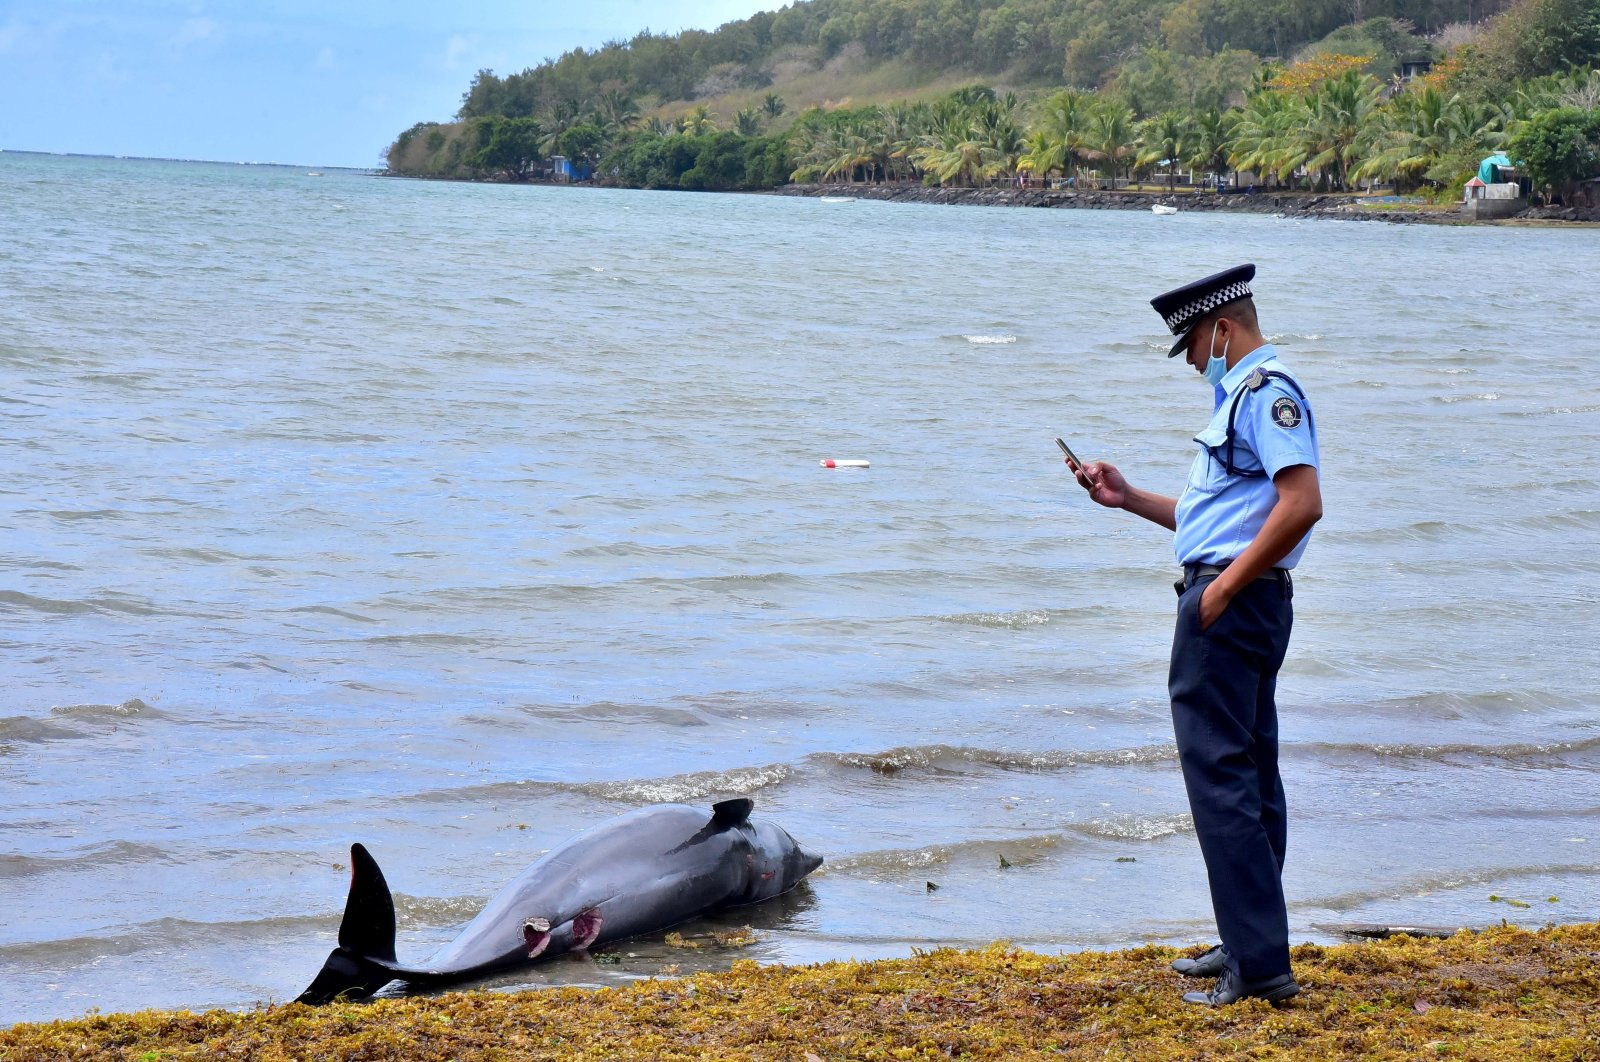 A policeman takes a photograph of a carcass of a dolphin that died and was washed up on shore at the Grand Sable, Mauritius on Aug. 26, 2020. (Reuters Photo)